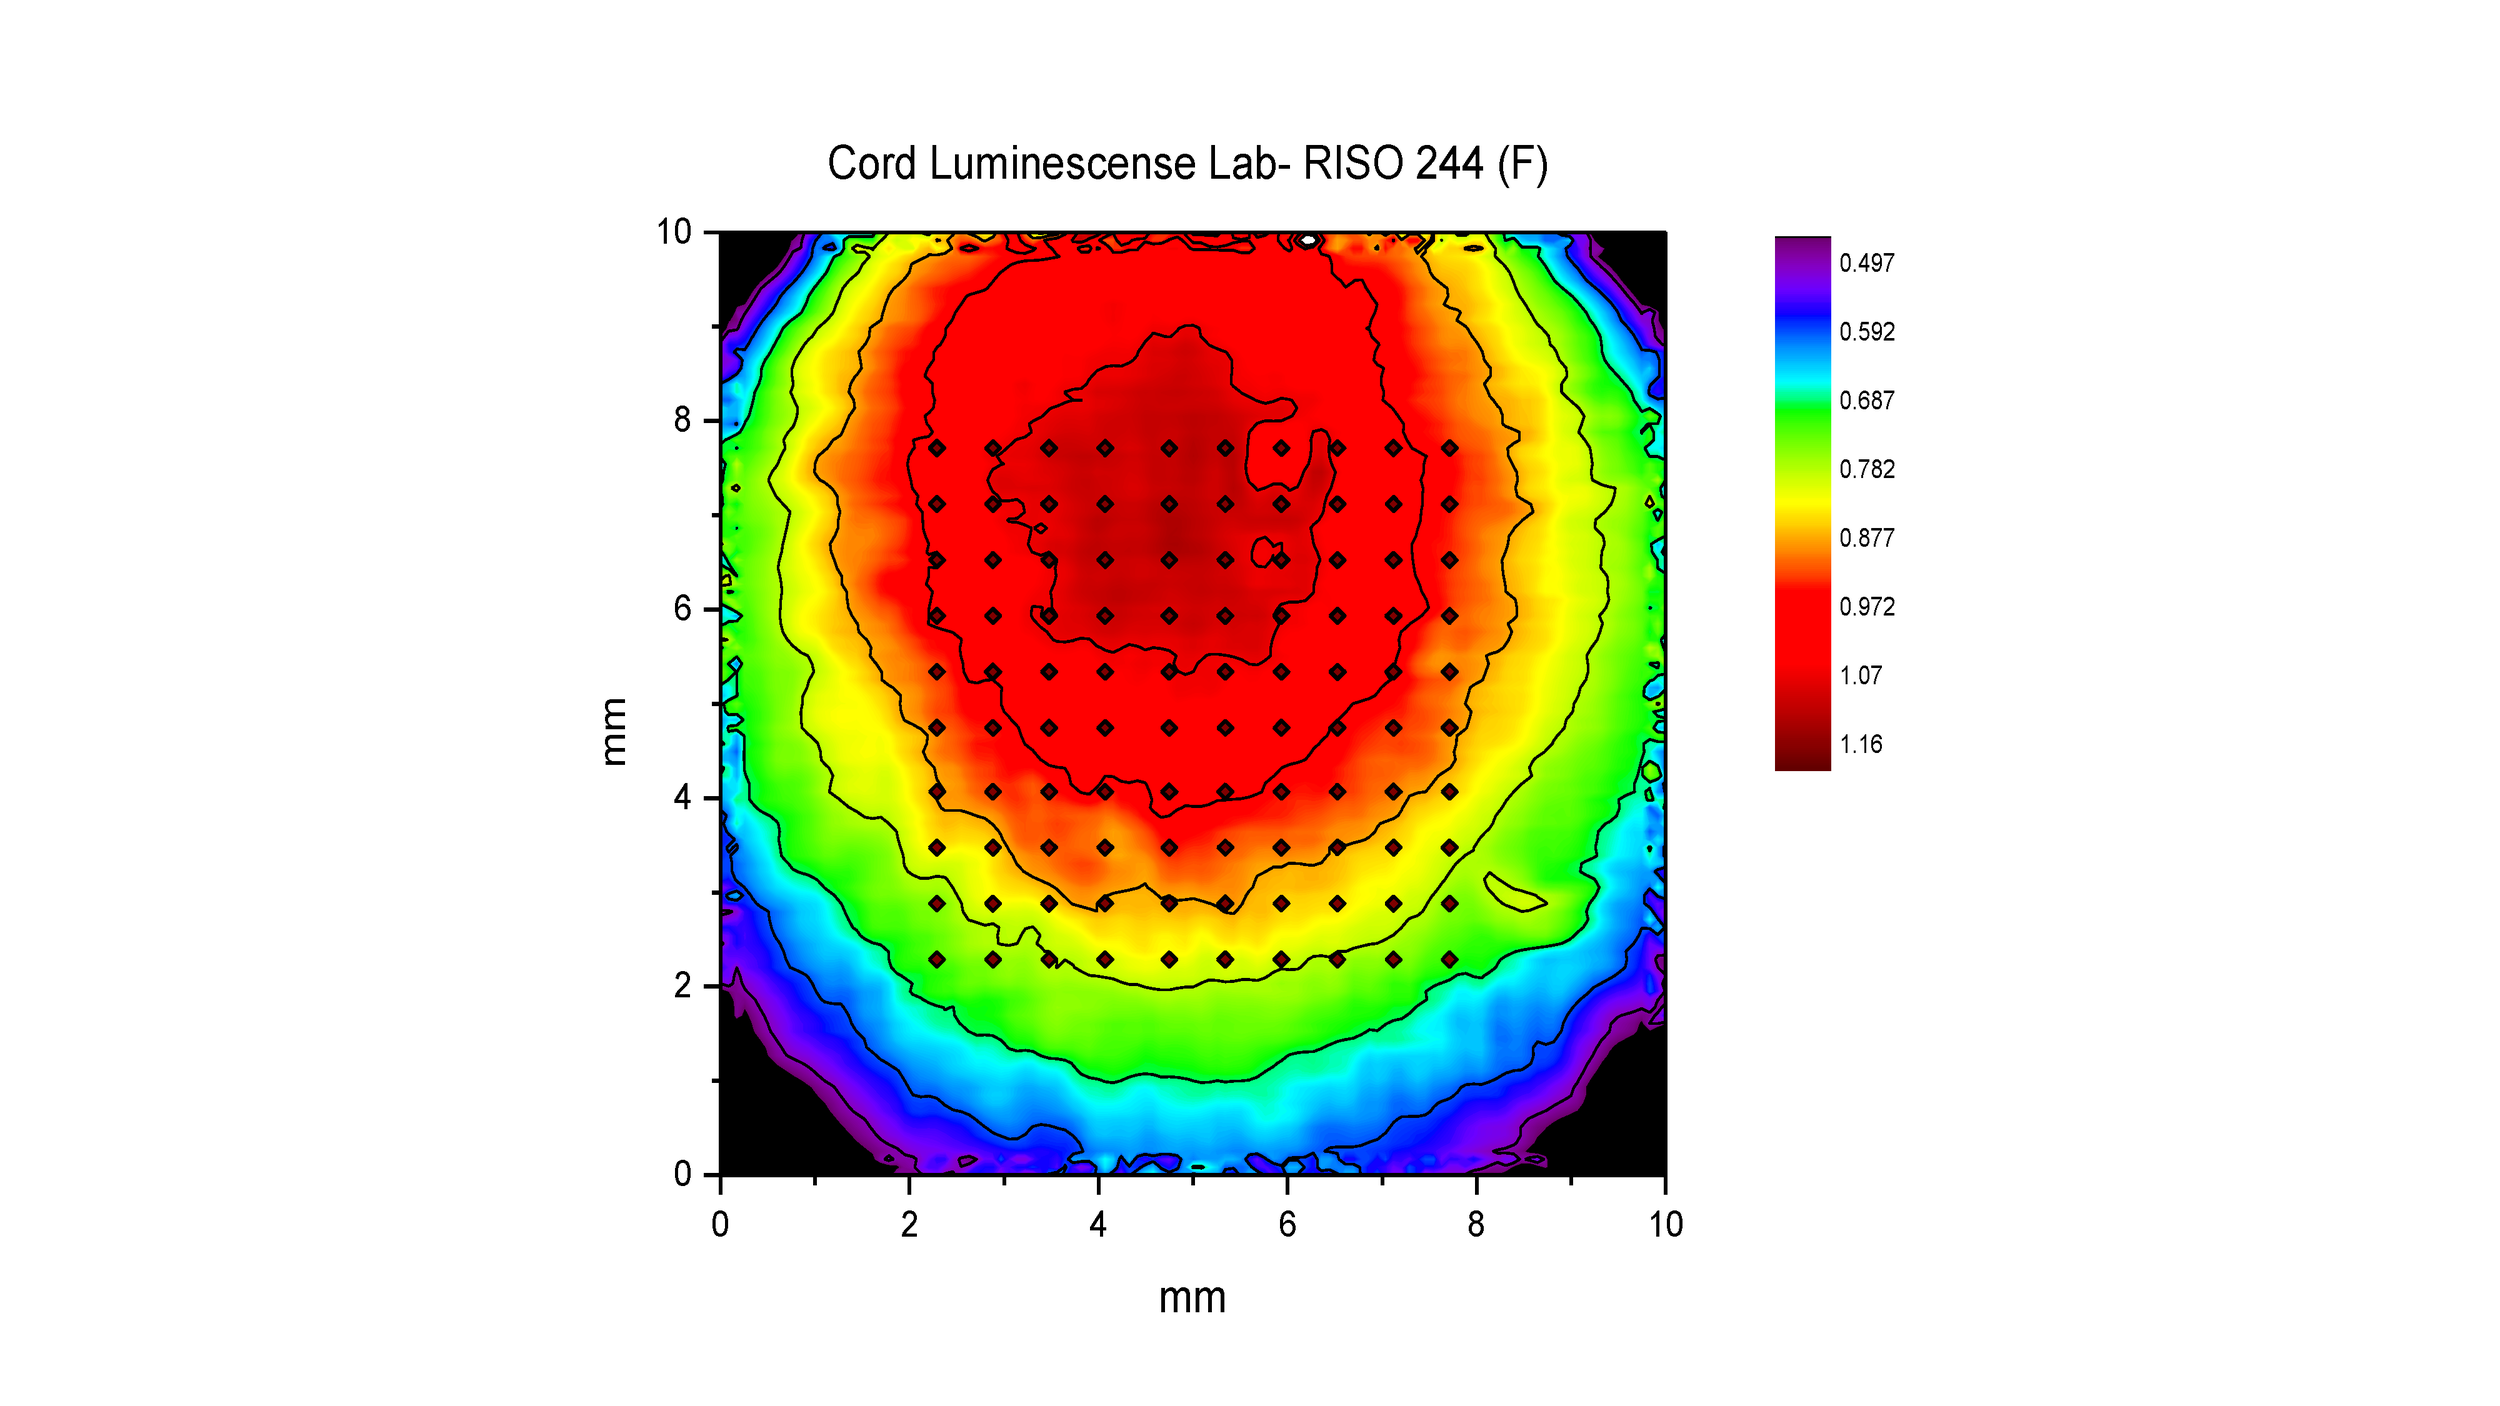 A contour plot of the relative dose rate over a 10 x 10 mm single-grain disc irradiated in a luminescence reader at DRI. Correction factors generated from these data are used to correct single-grain data measured on this machine for non-uniform beta irradiation.